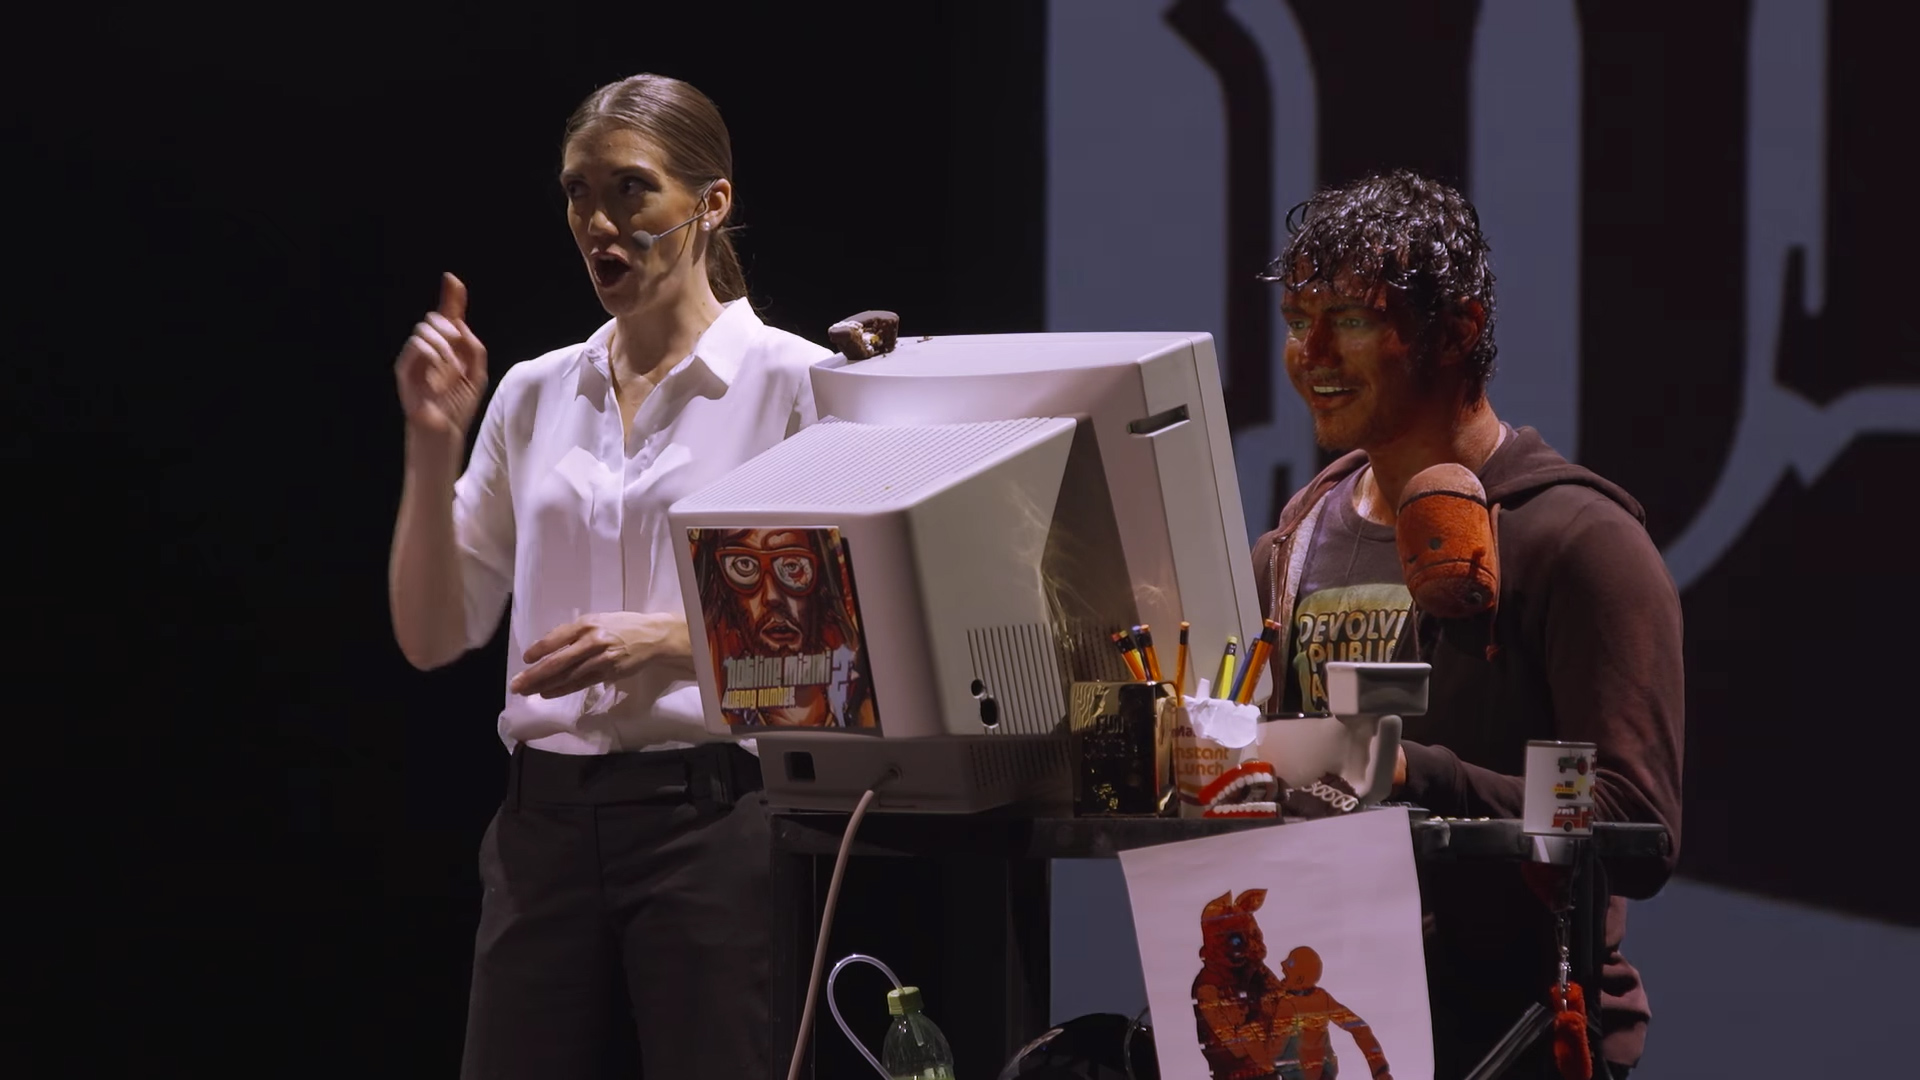 Devolver Digital is doing another E3 press conference screenshot